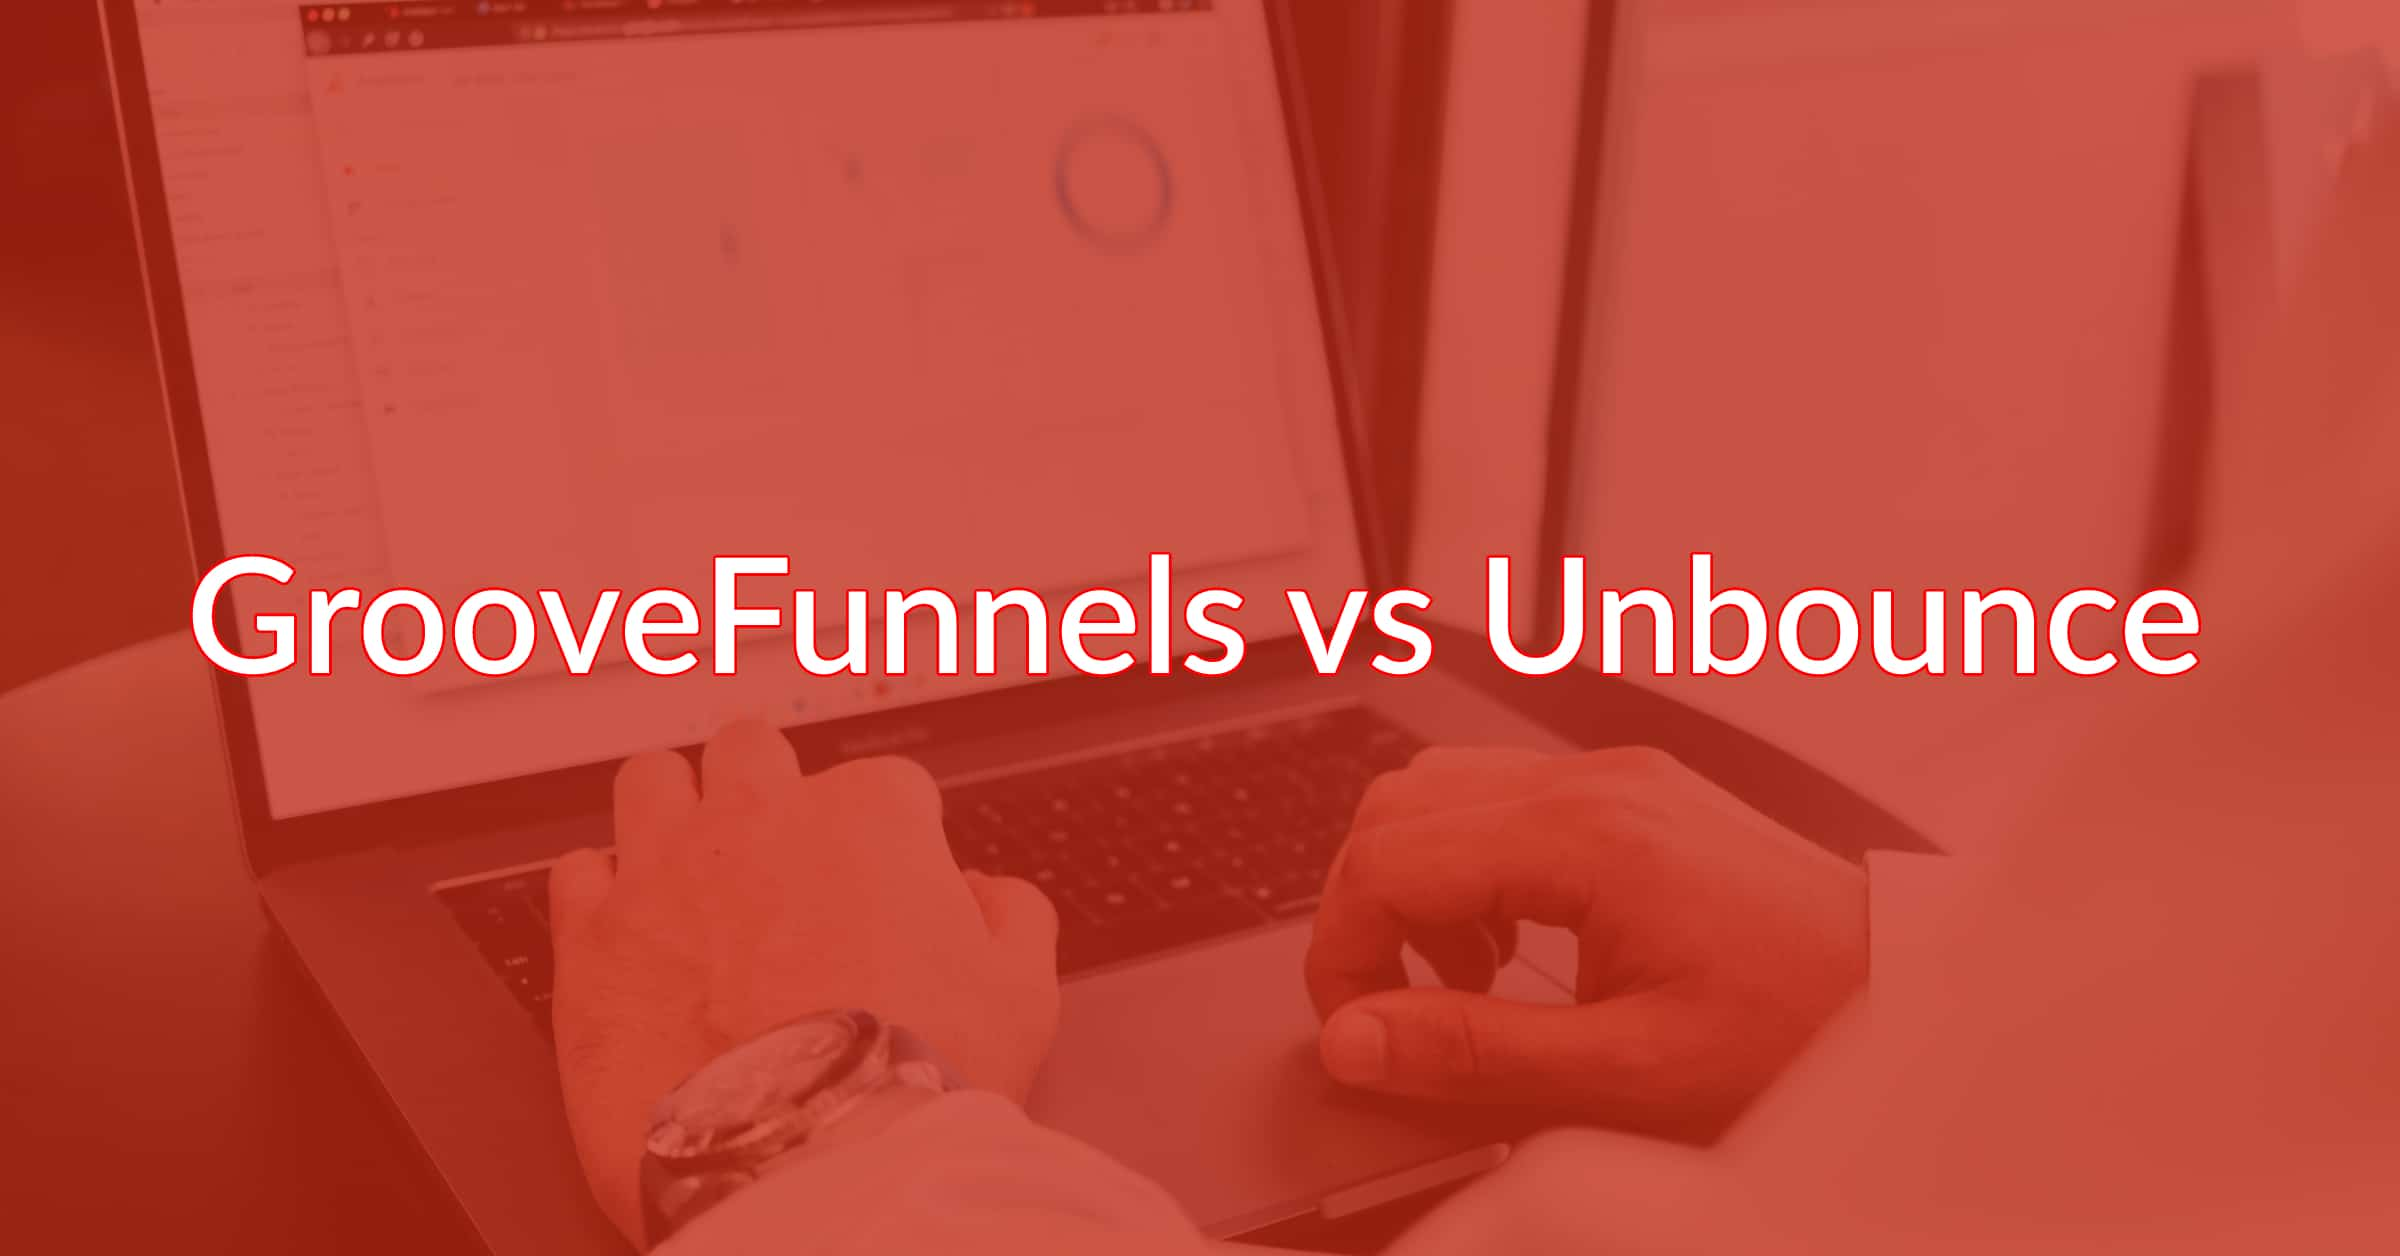 GrooveFunnels vs Unbounce: Which Should You Be Using?